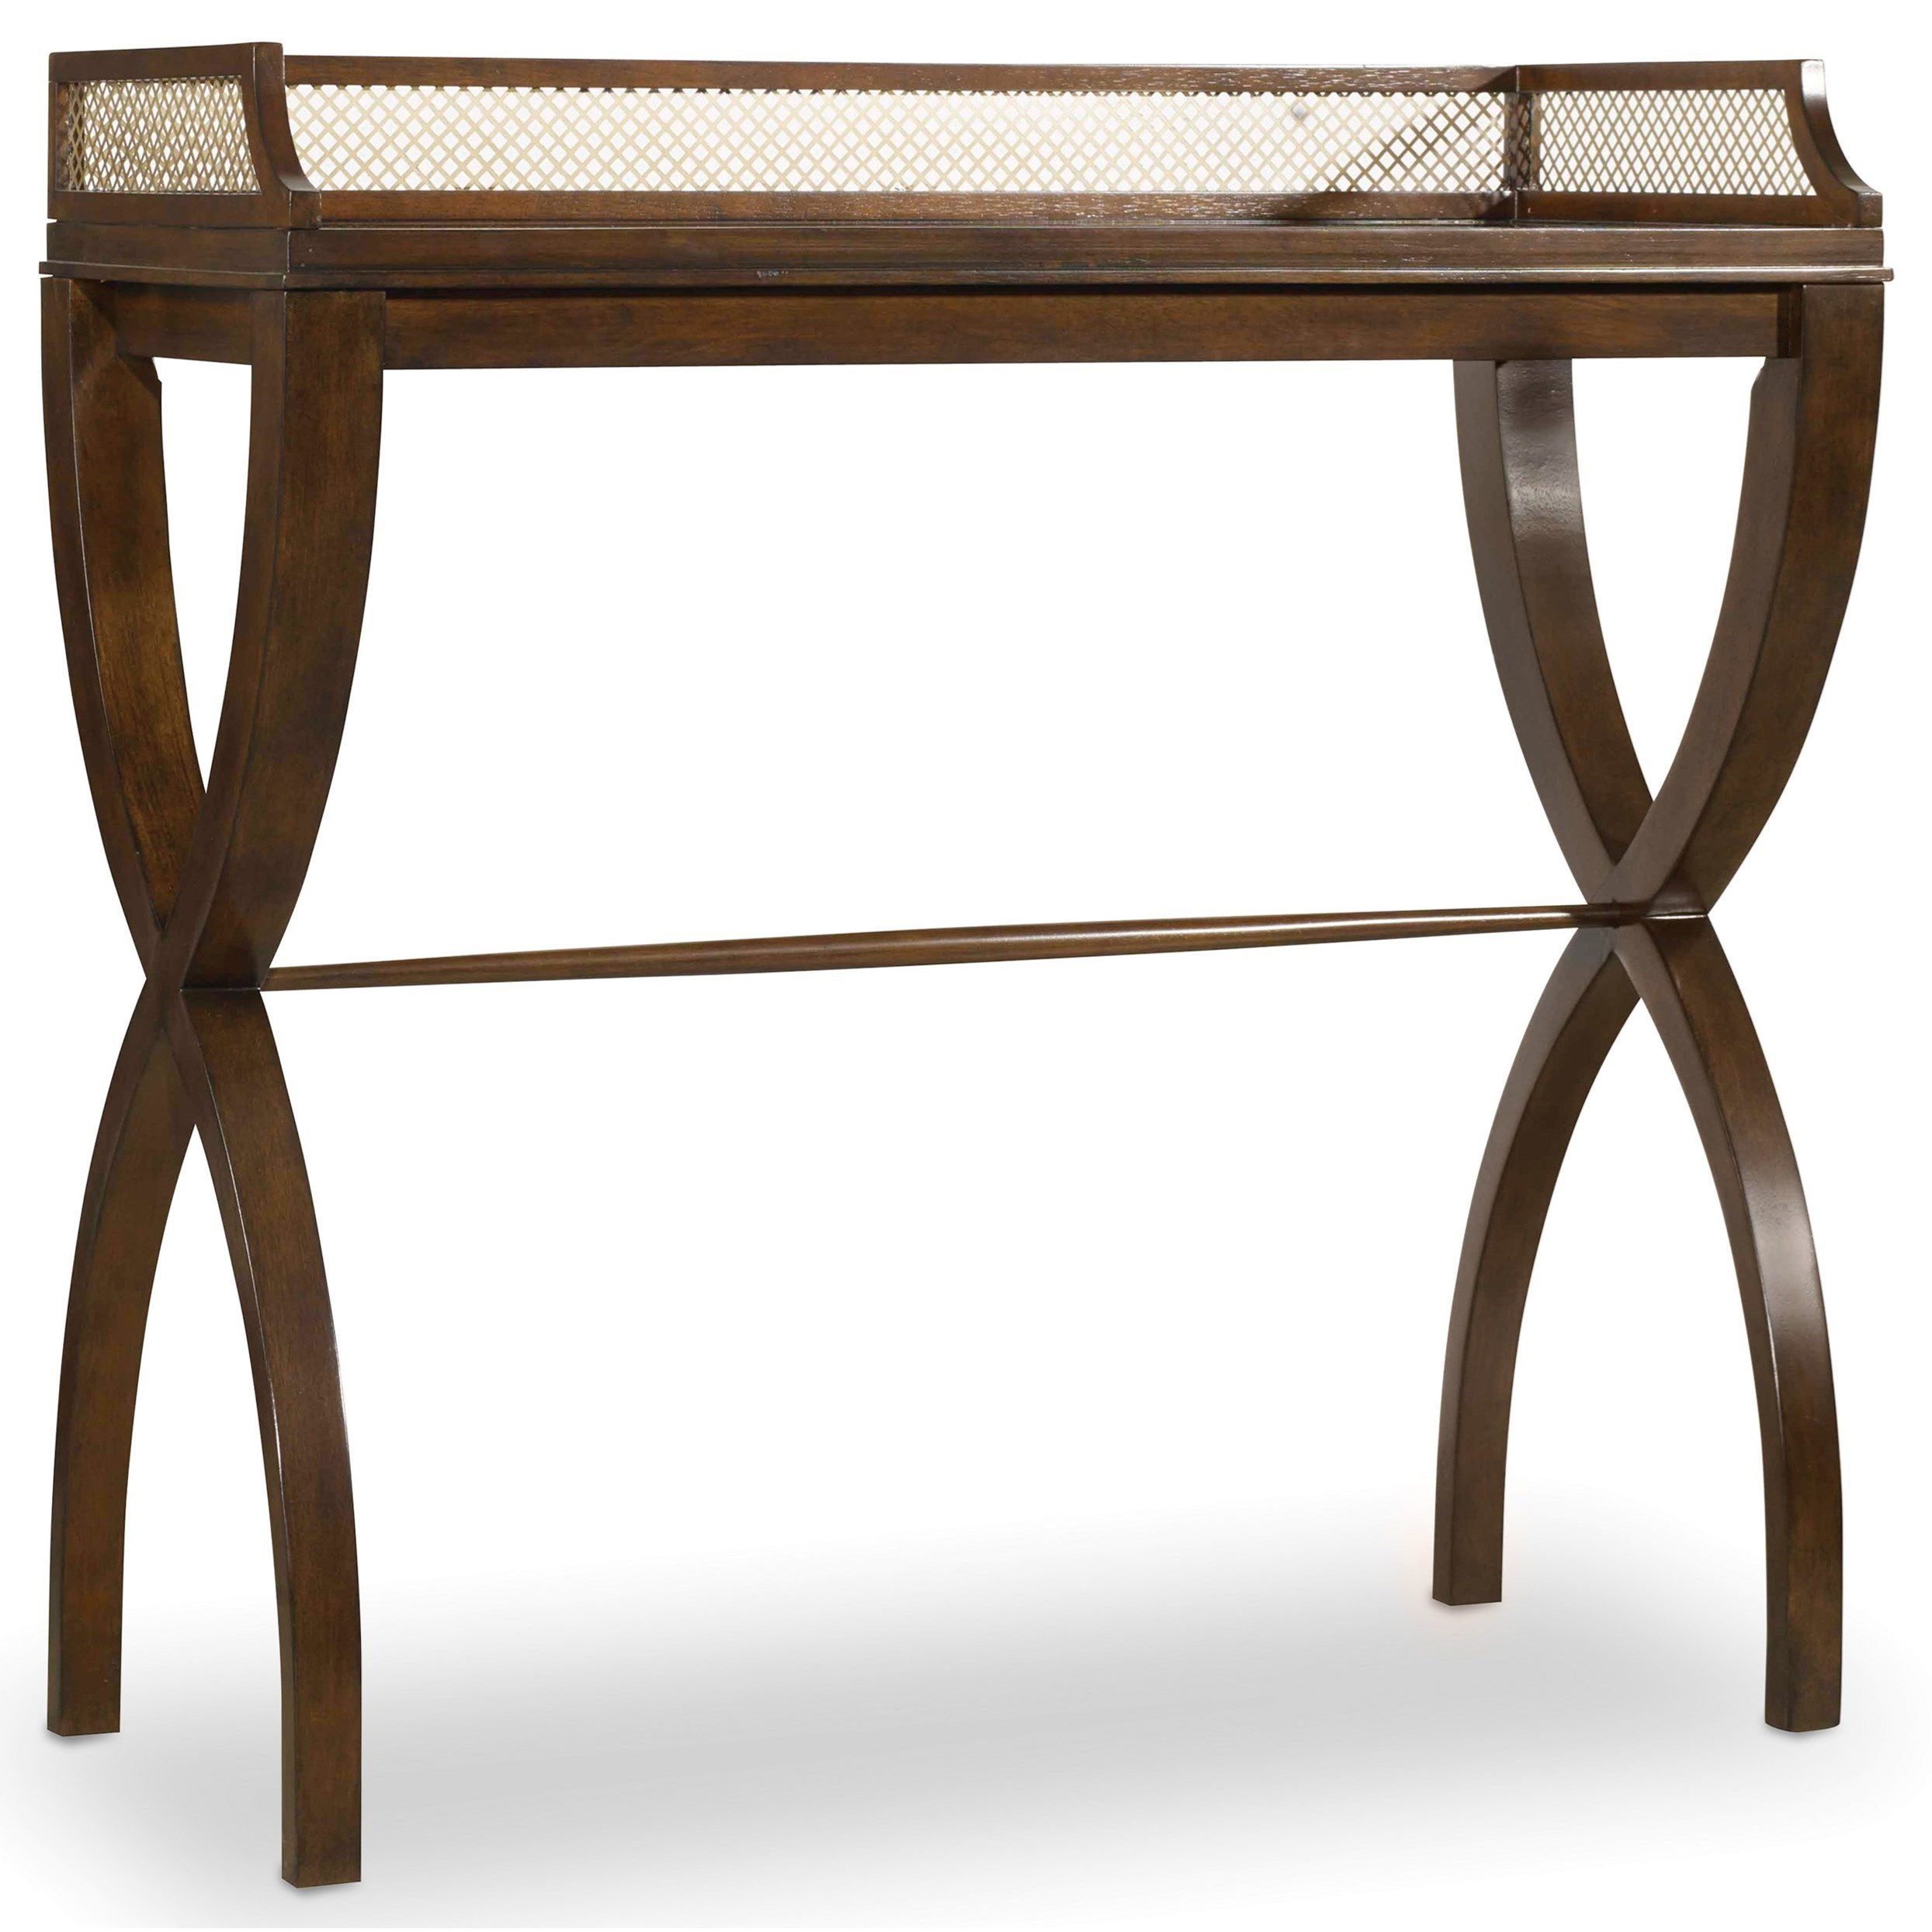 Hooker Furniture Skyline Consulate Table - Item Number: 5336-85002